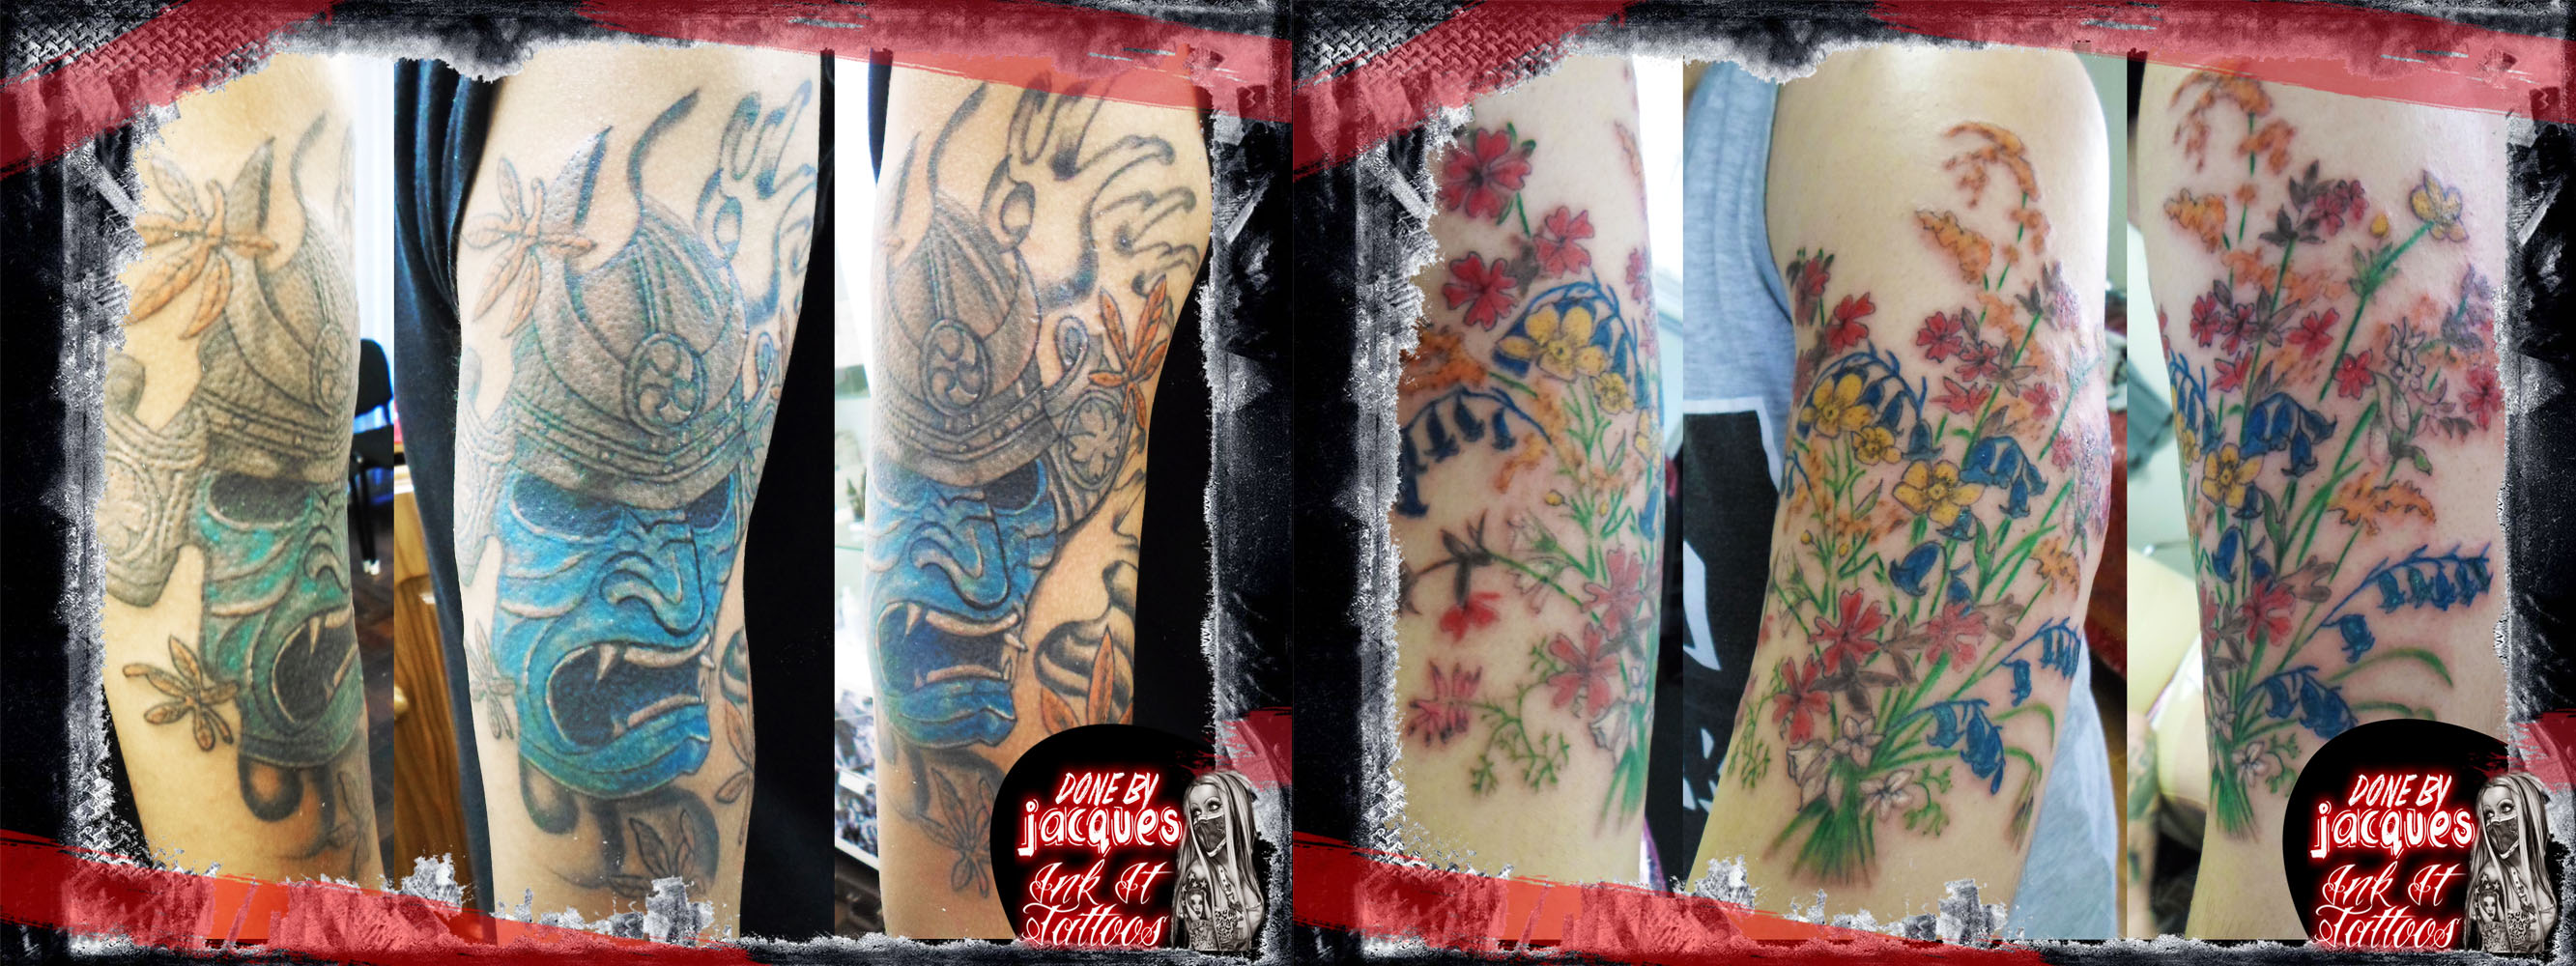 Tattoos done by Ink It Tattoos in Durban